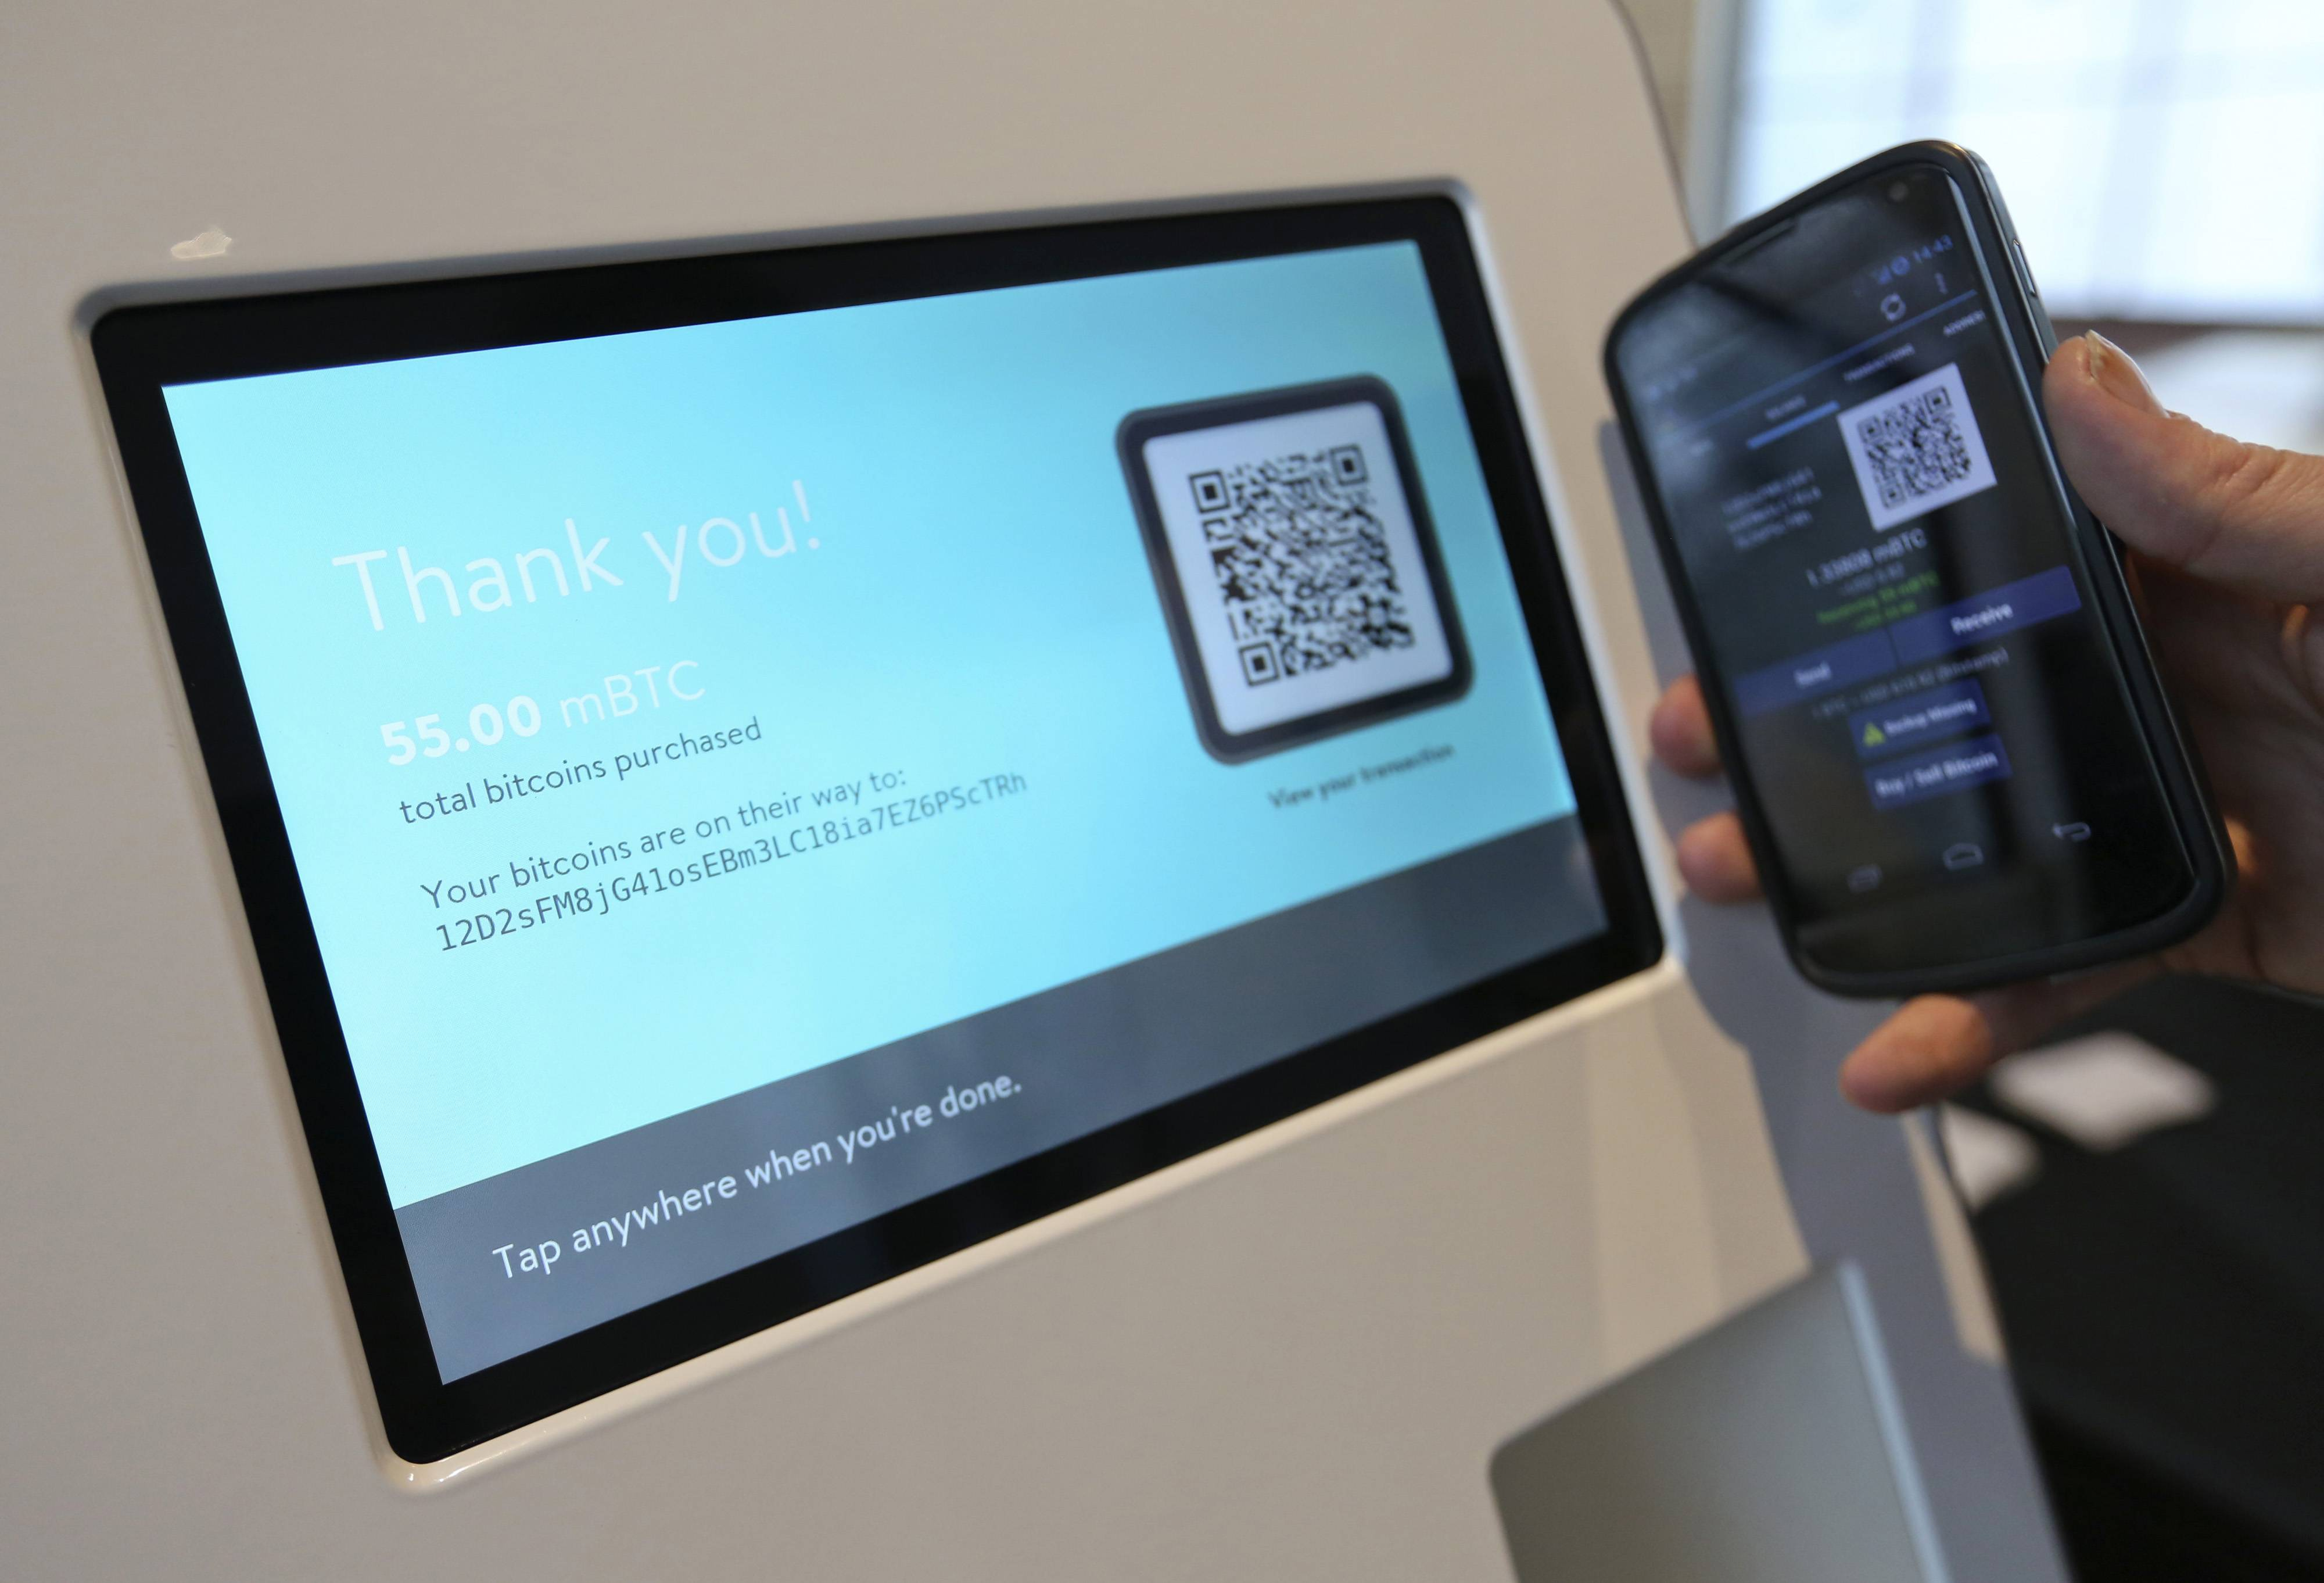 A customer confirms receipt of a bitcoin purchase with cash using a bitcoin automated teller machine (ATM) at the CoinSummit Virtual Currency conference in London, U.K.